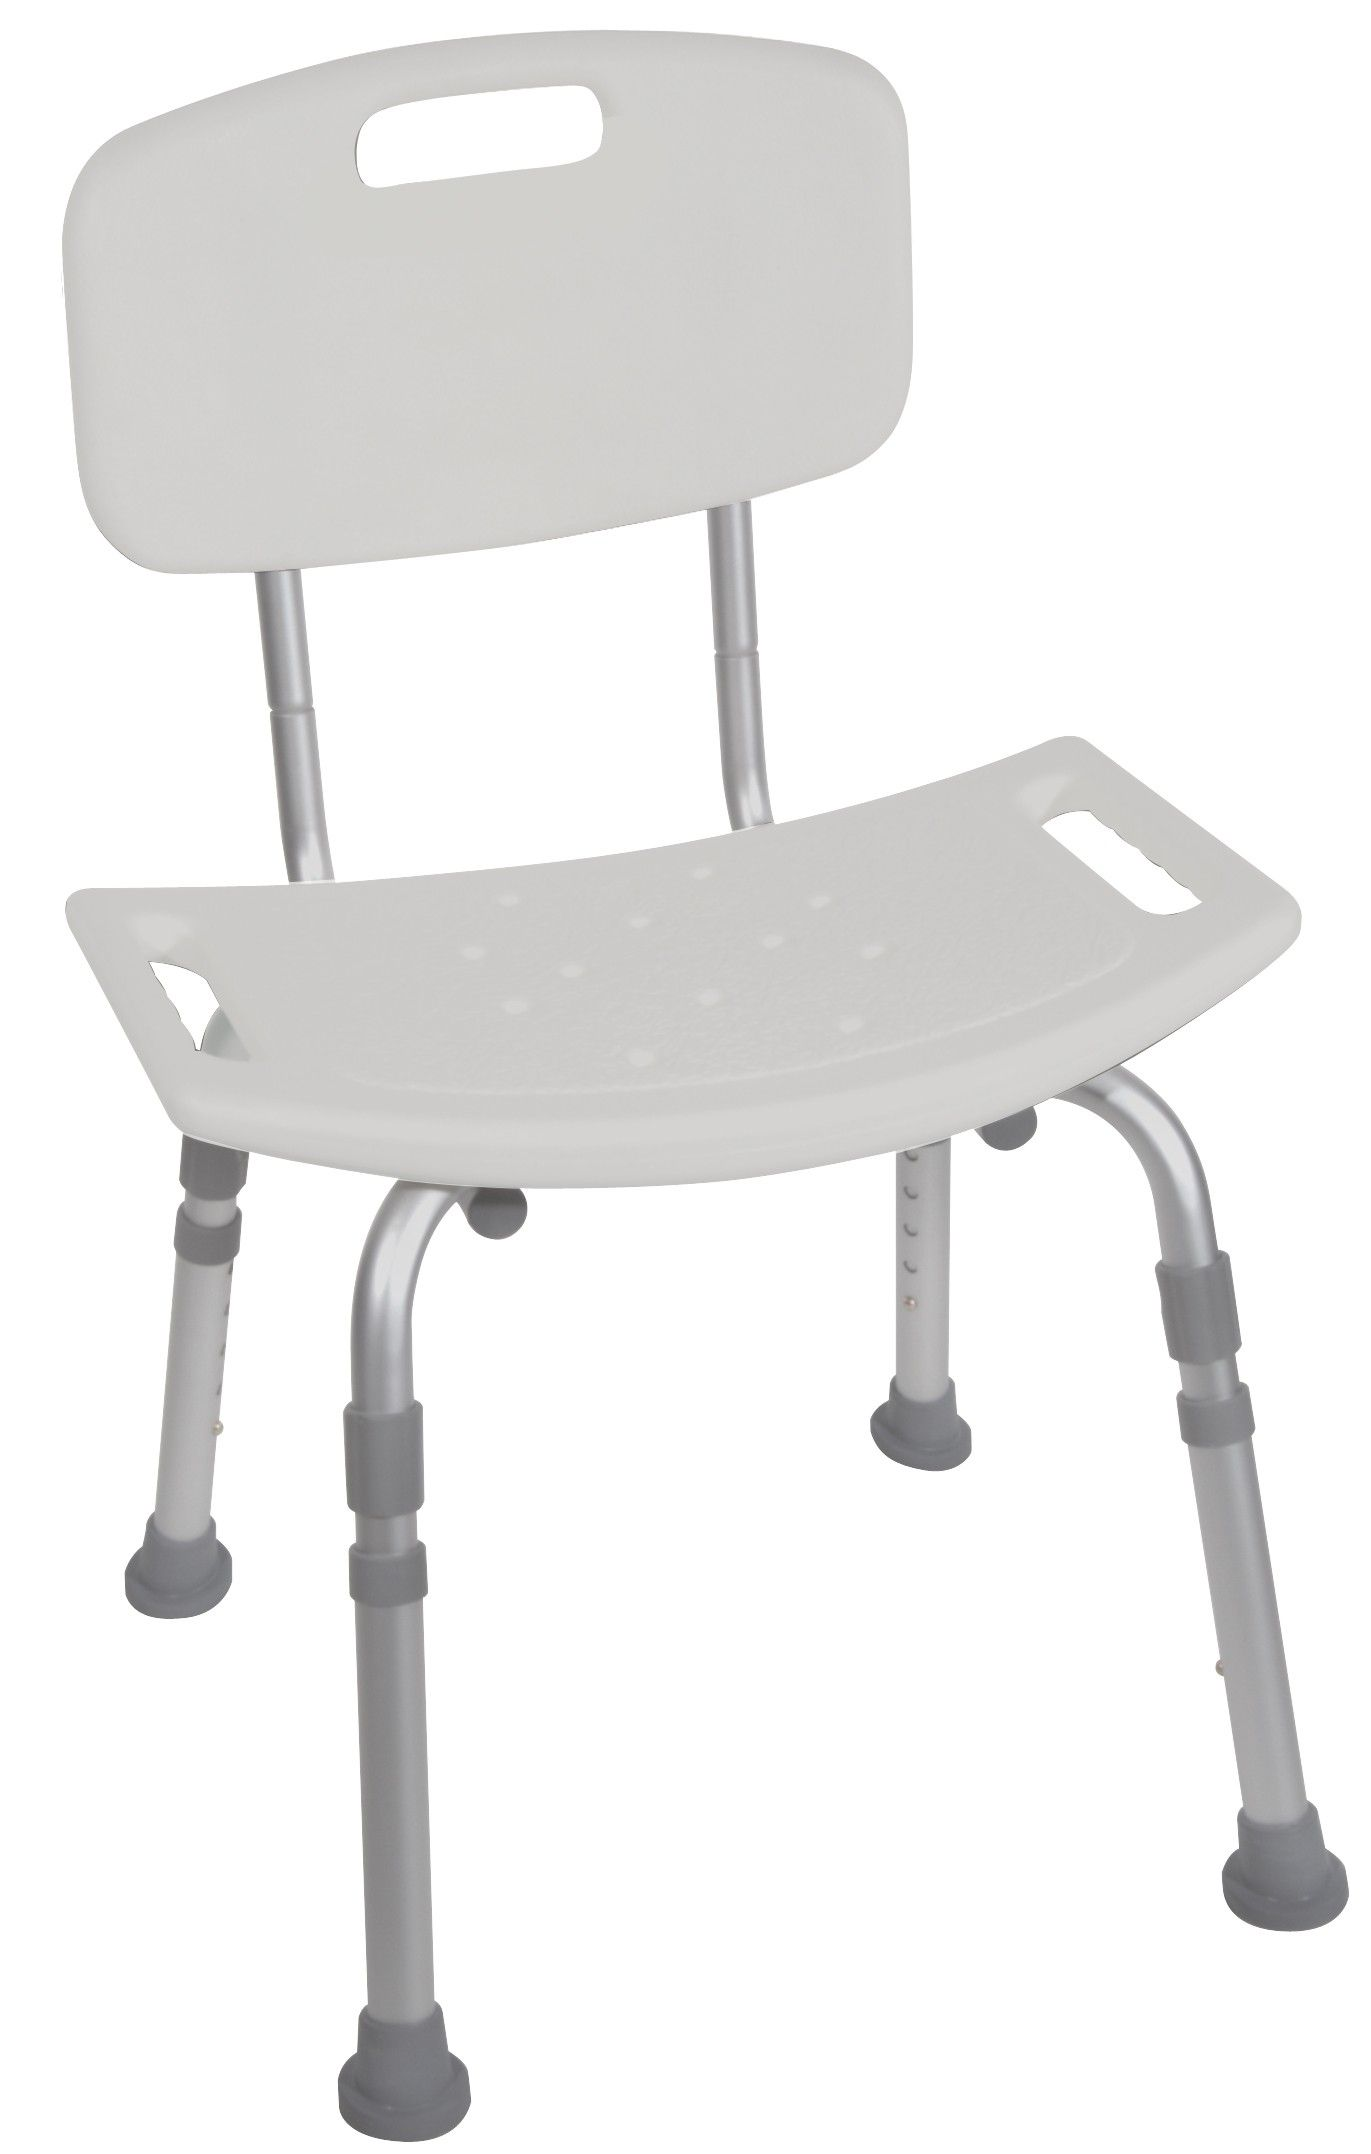 Shower Stools For The Elderly, Handicapped Shower Stool, Portable Shower  Chairs For Disabled,